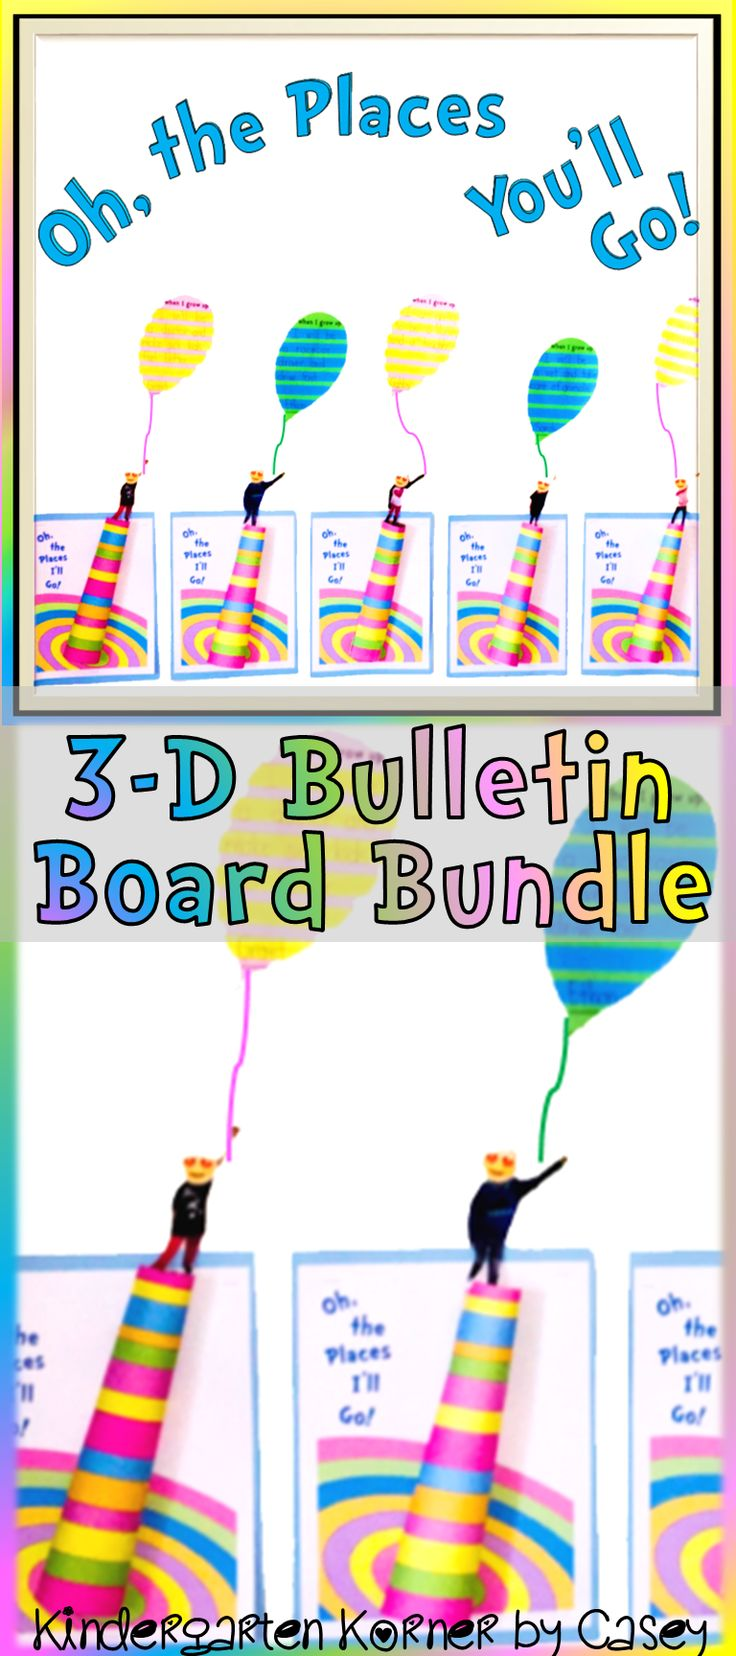 This Dr. Seuss Inspired Oh, the Places You'll Go! Bulletin Board BUNDLE includes 27 differentiated balloon writing templates, craft templates, bulletin board letters, and decor to create an AMAZING display for Dr. Seuss' birthday, the beginning of the year, graduation, or Read Across America! Both primary and regular lined templates accommodate writers in kindergarten through 4th grade.